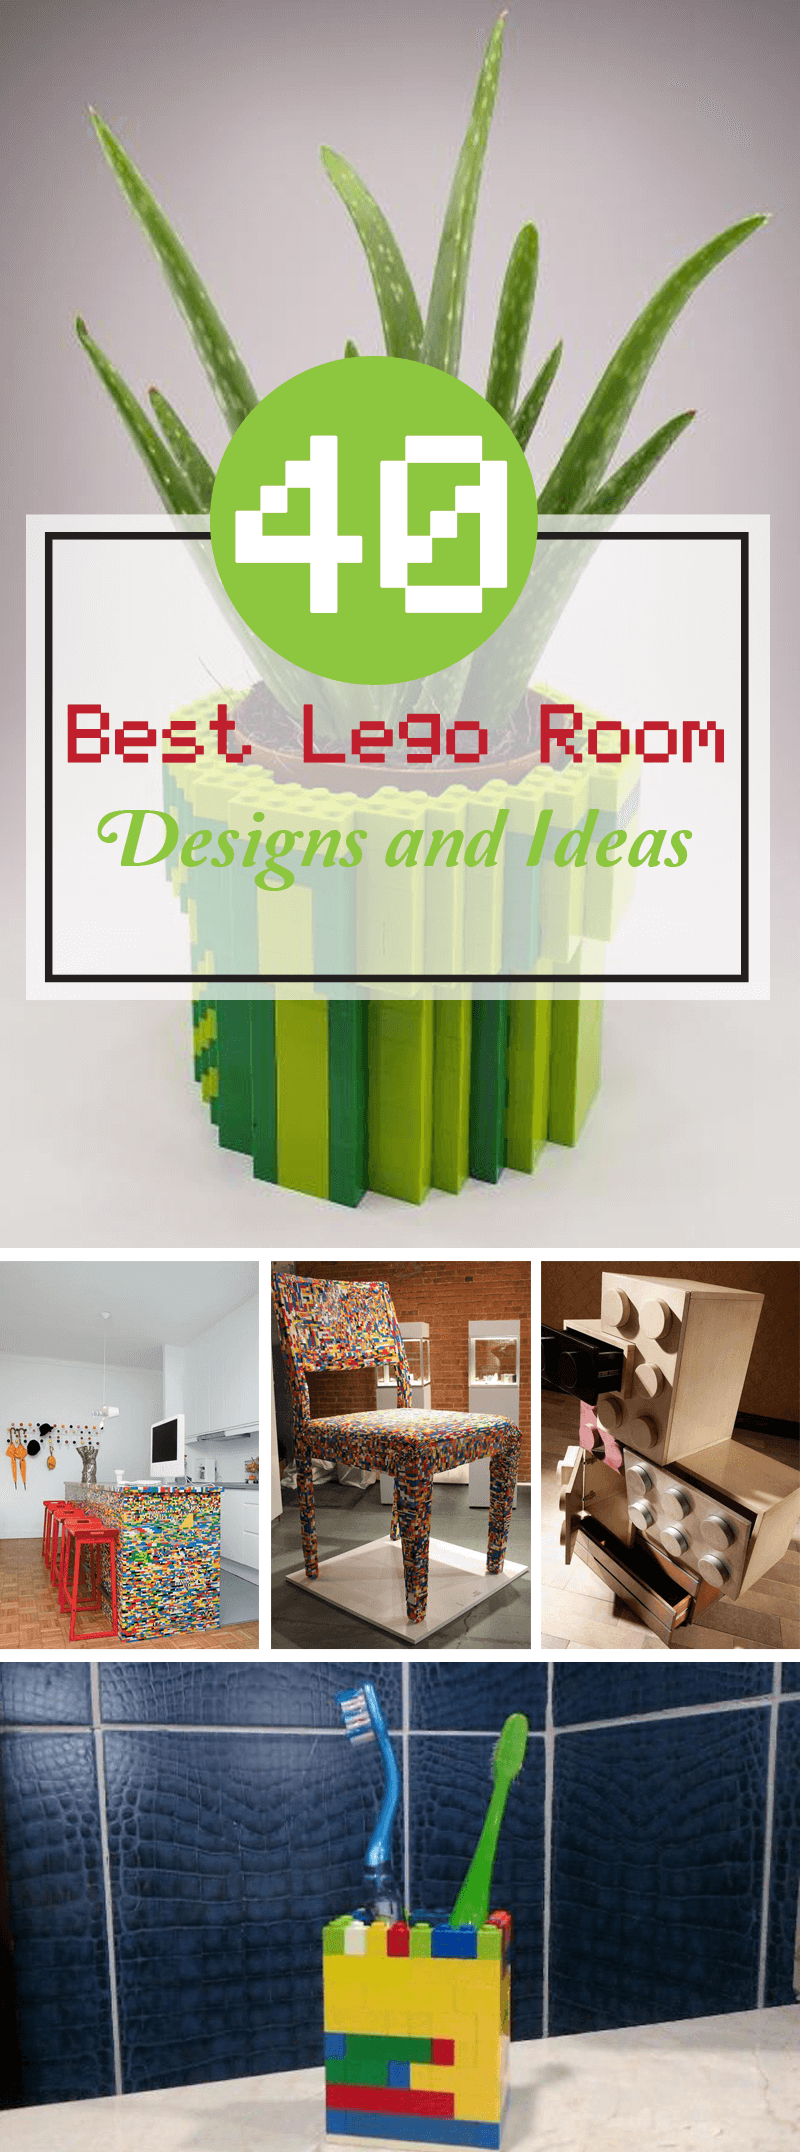 best lego room designs and ideas